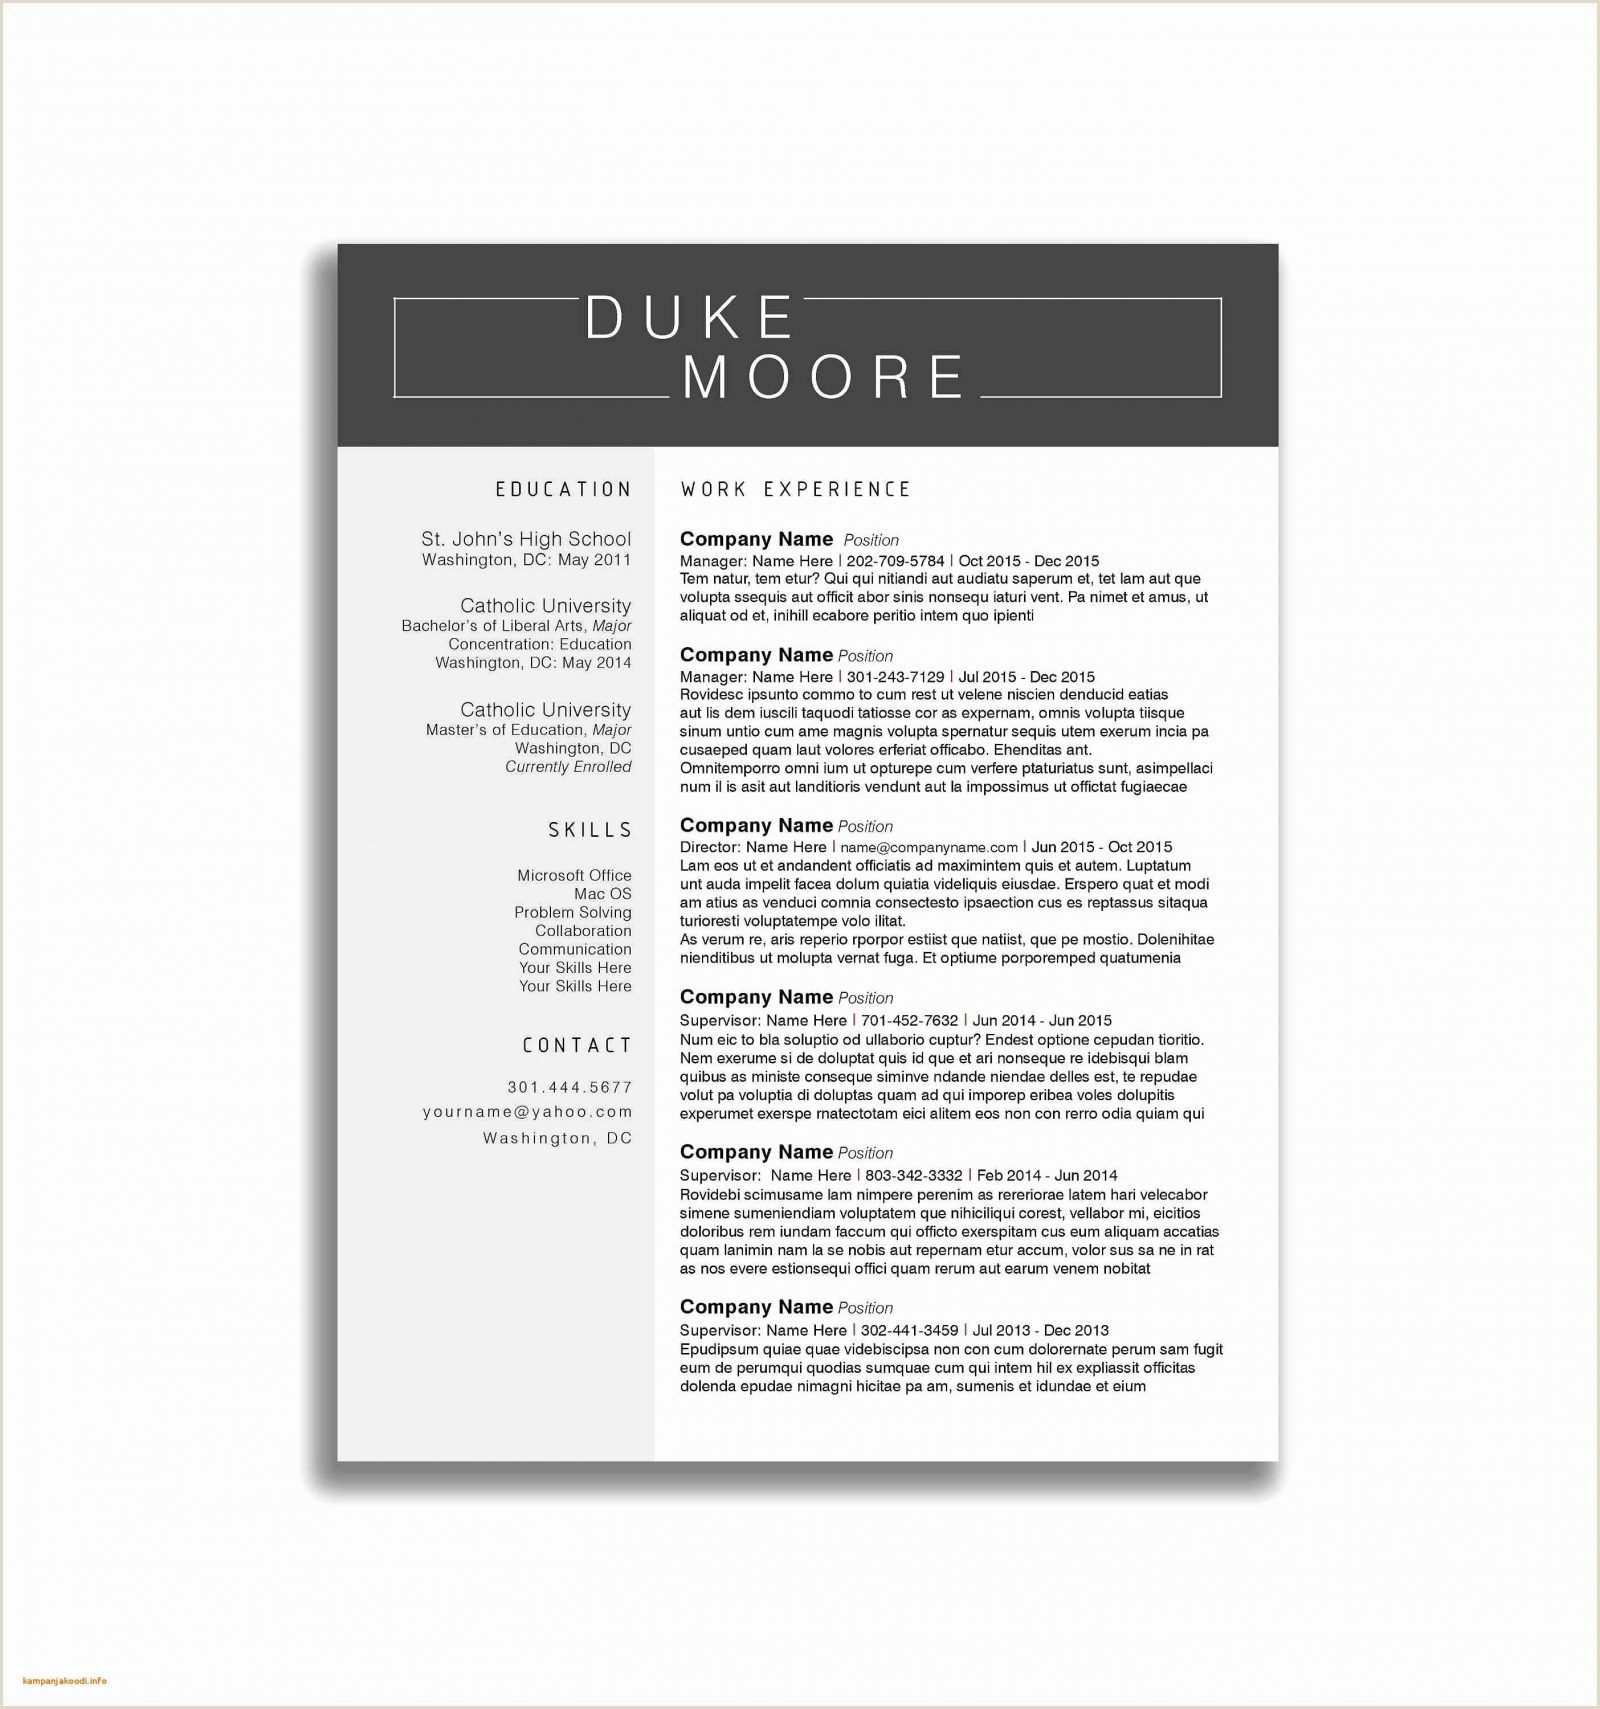 Fresher Resume format Doc Download 32 Resume Templates for Freshers Download Free Word format